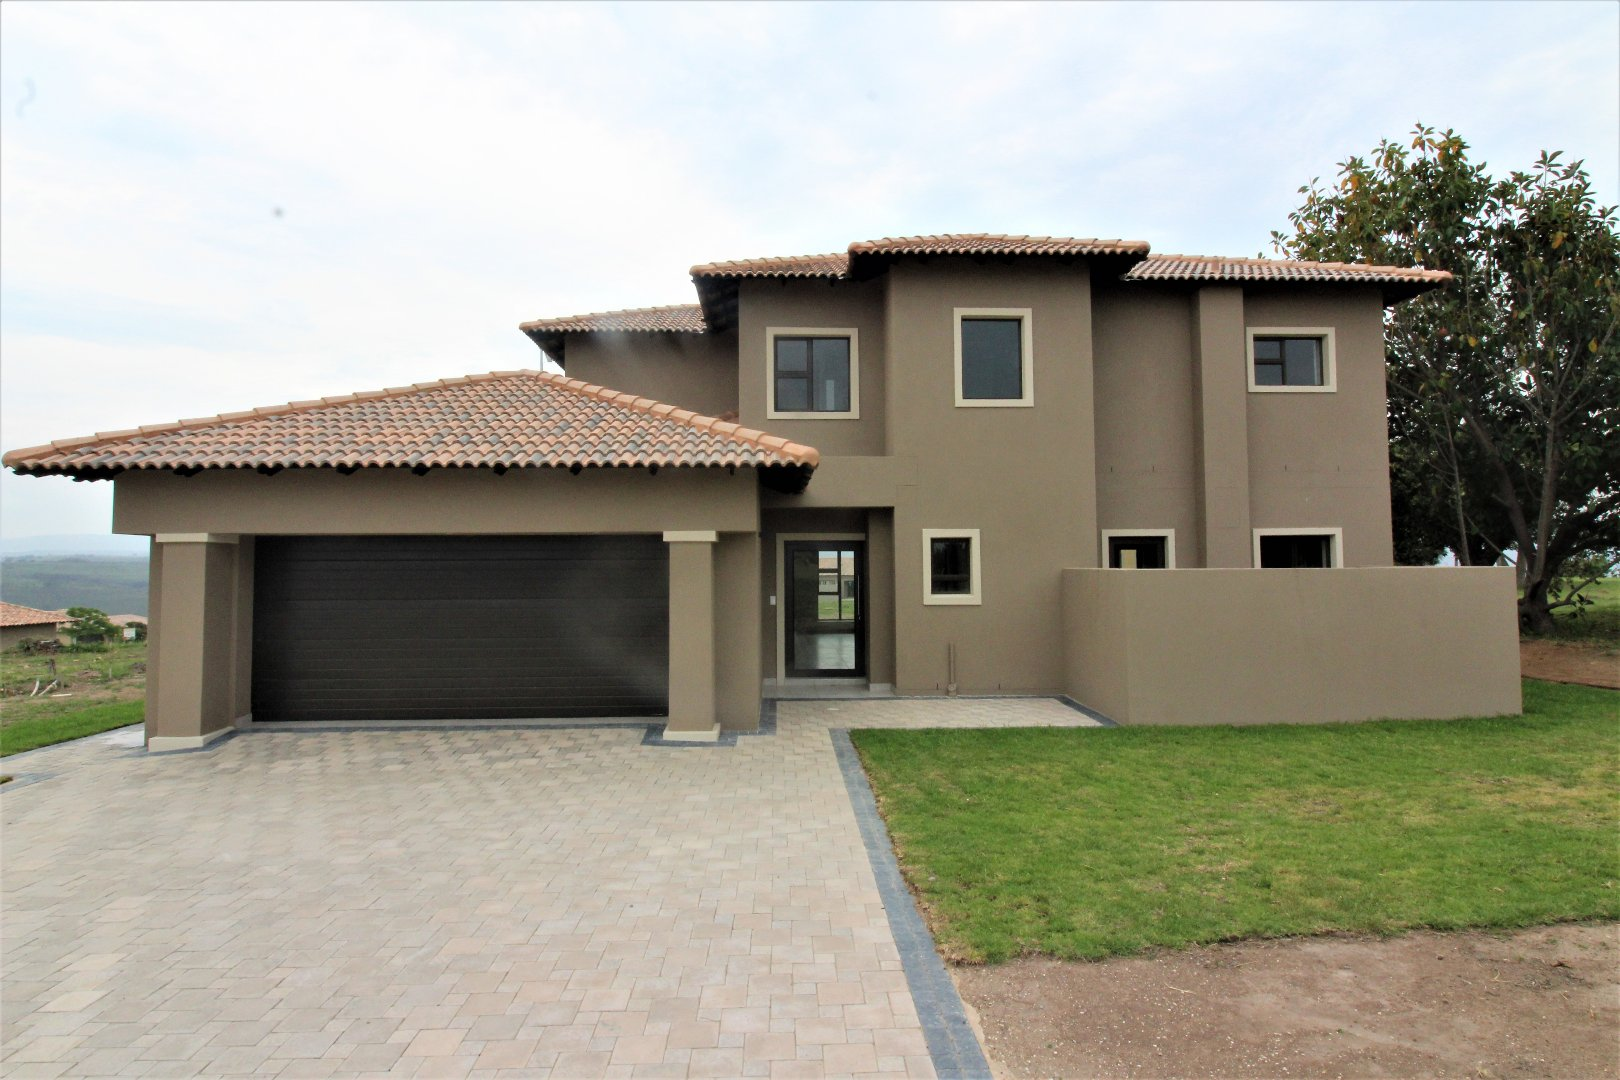 Property for Sale by DLC INC. ATTORNEYS Dale Hobbs, House, 4 Bedrooms - ZAR 3,600,000